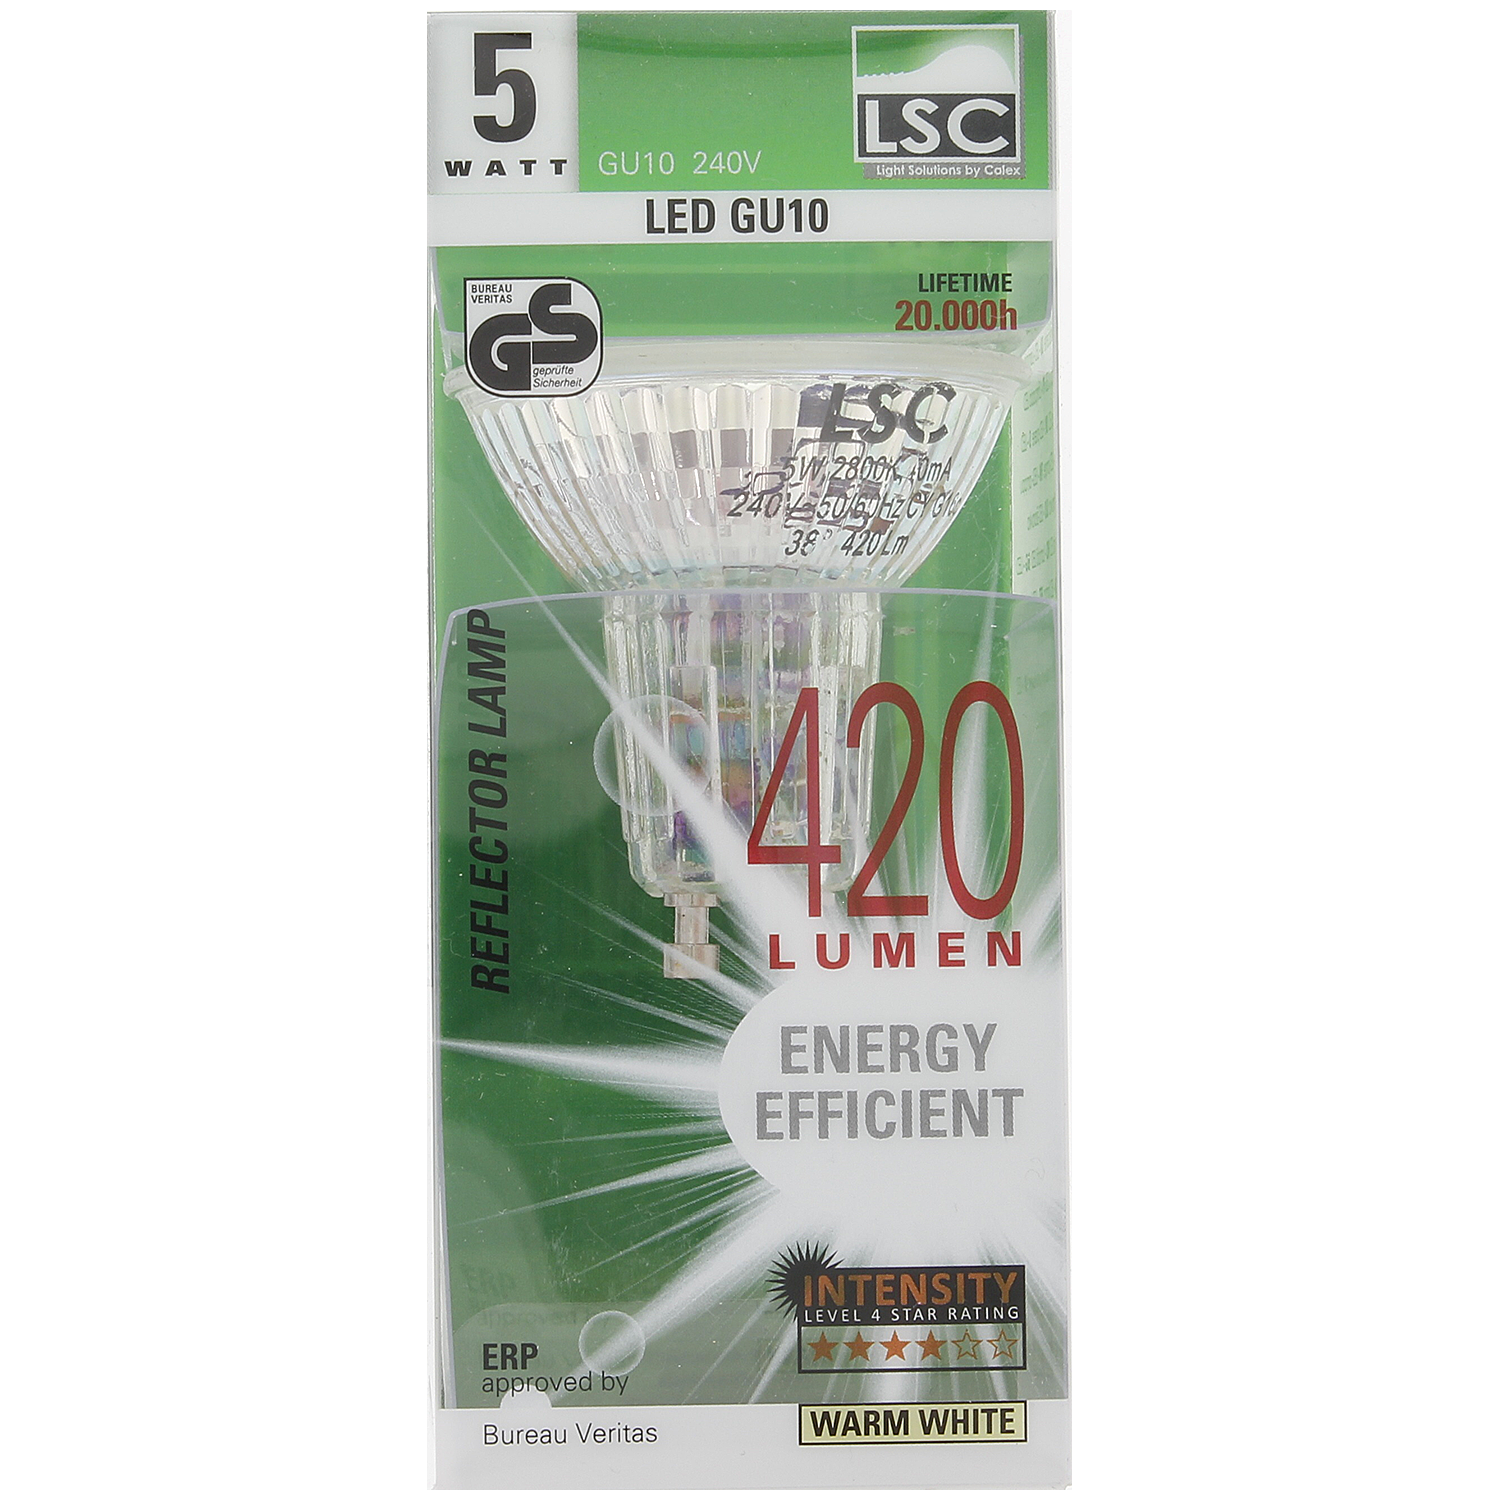 LSC ledlamp 5 watt | 420 lumen | Action.com